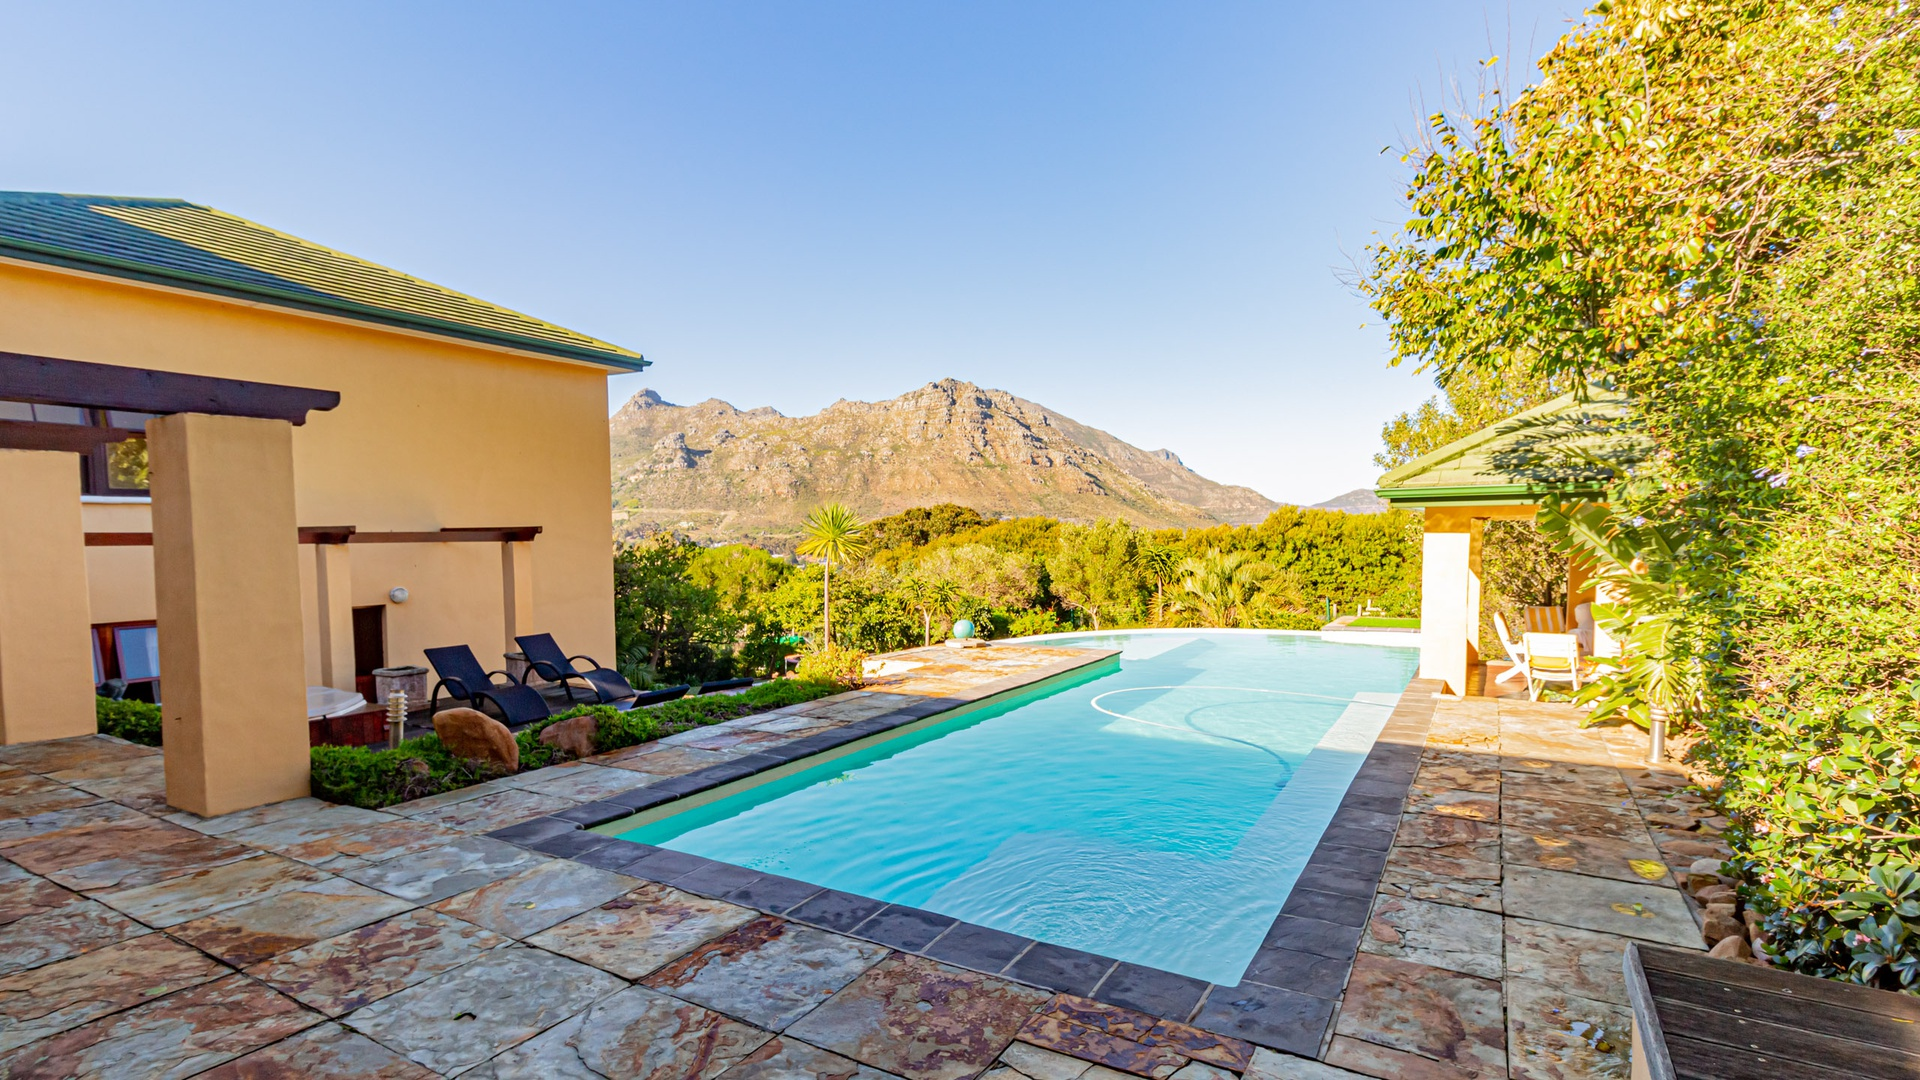 House in Hout Bay - Image-026.jpg